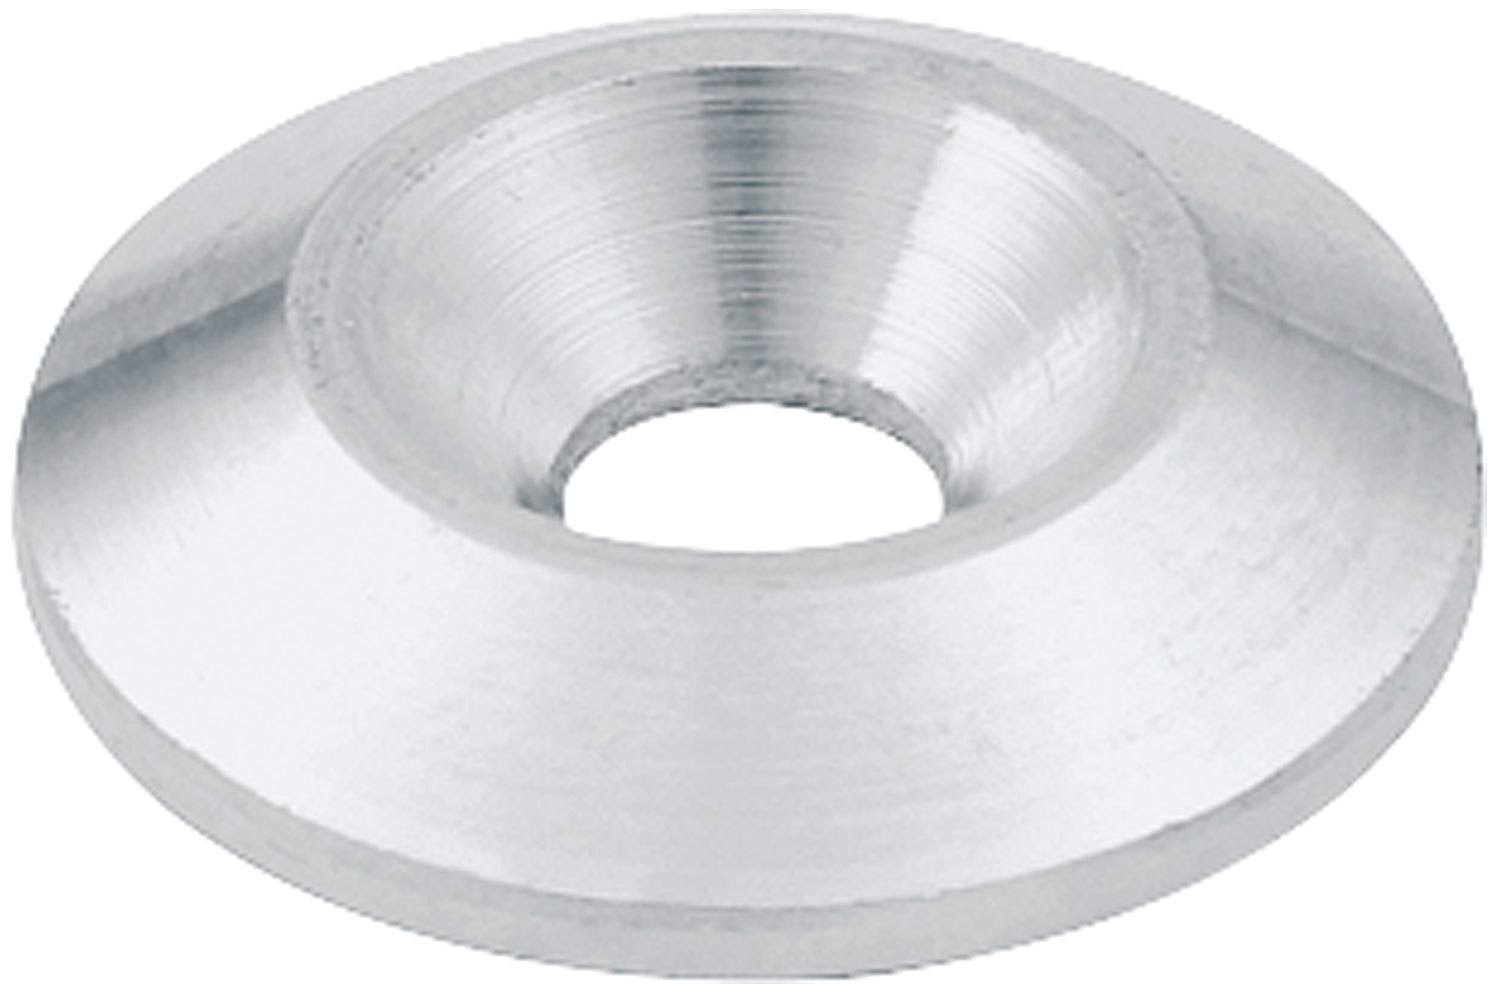 Allstar Performance Countersunk Washer 1/4in x 1in 10pk